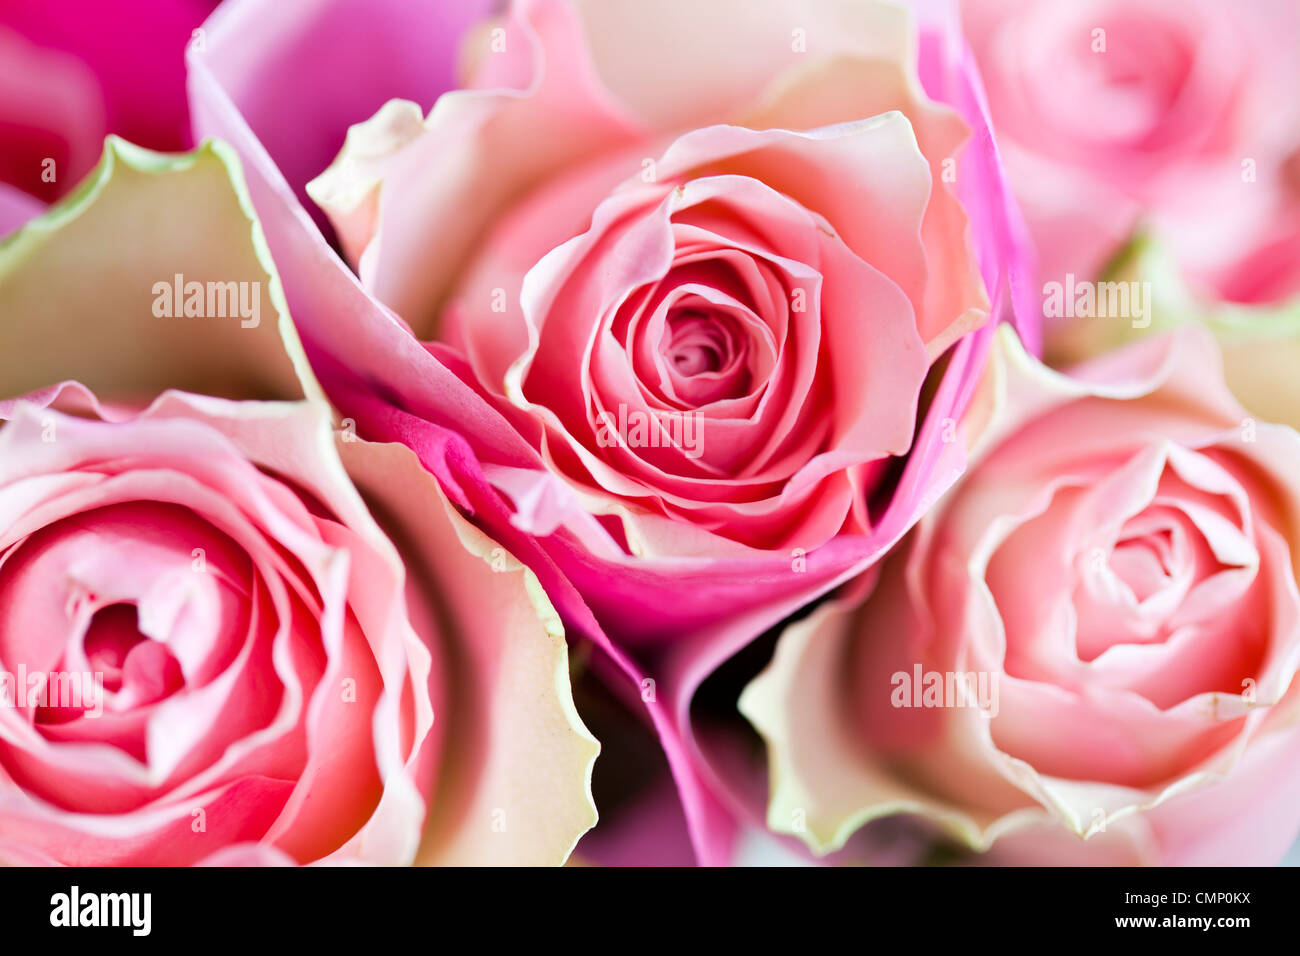 pink roses wrapped in tissue paper. - Stock Image